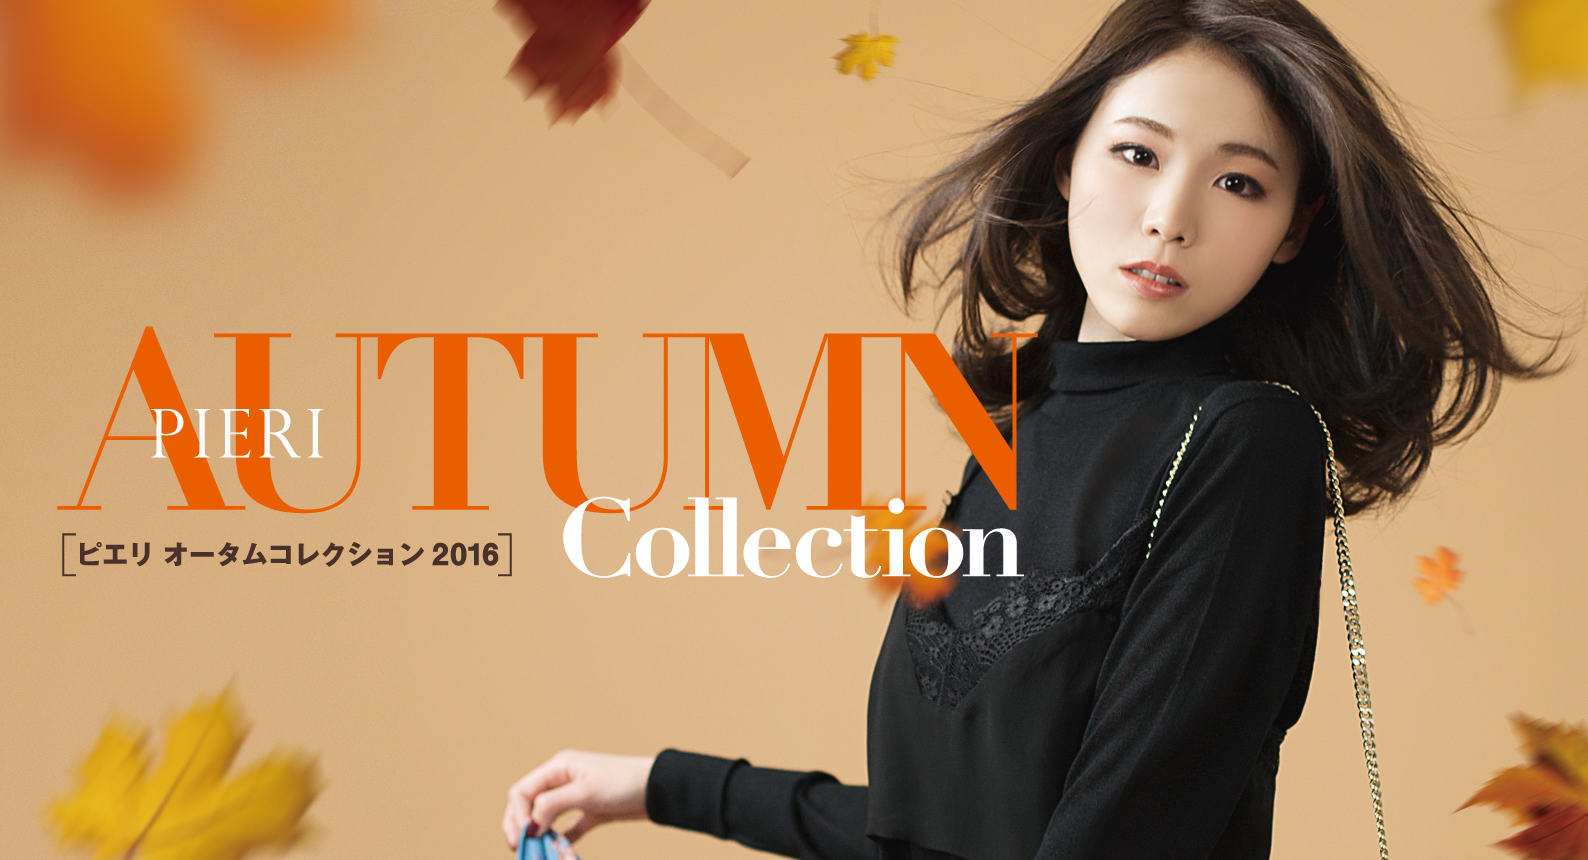 AutumnCollection